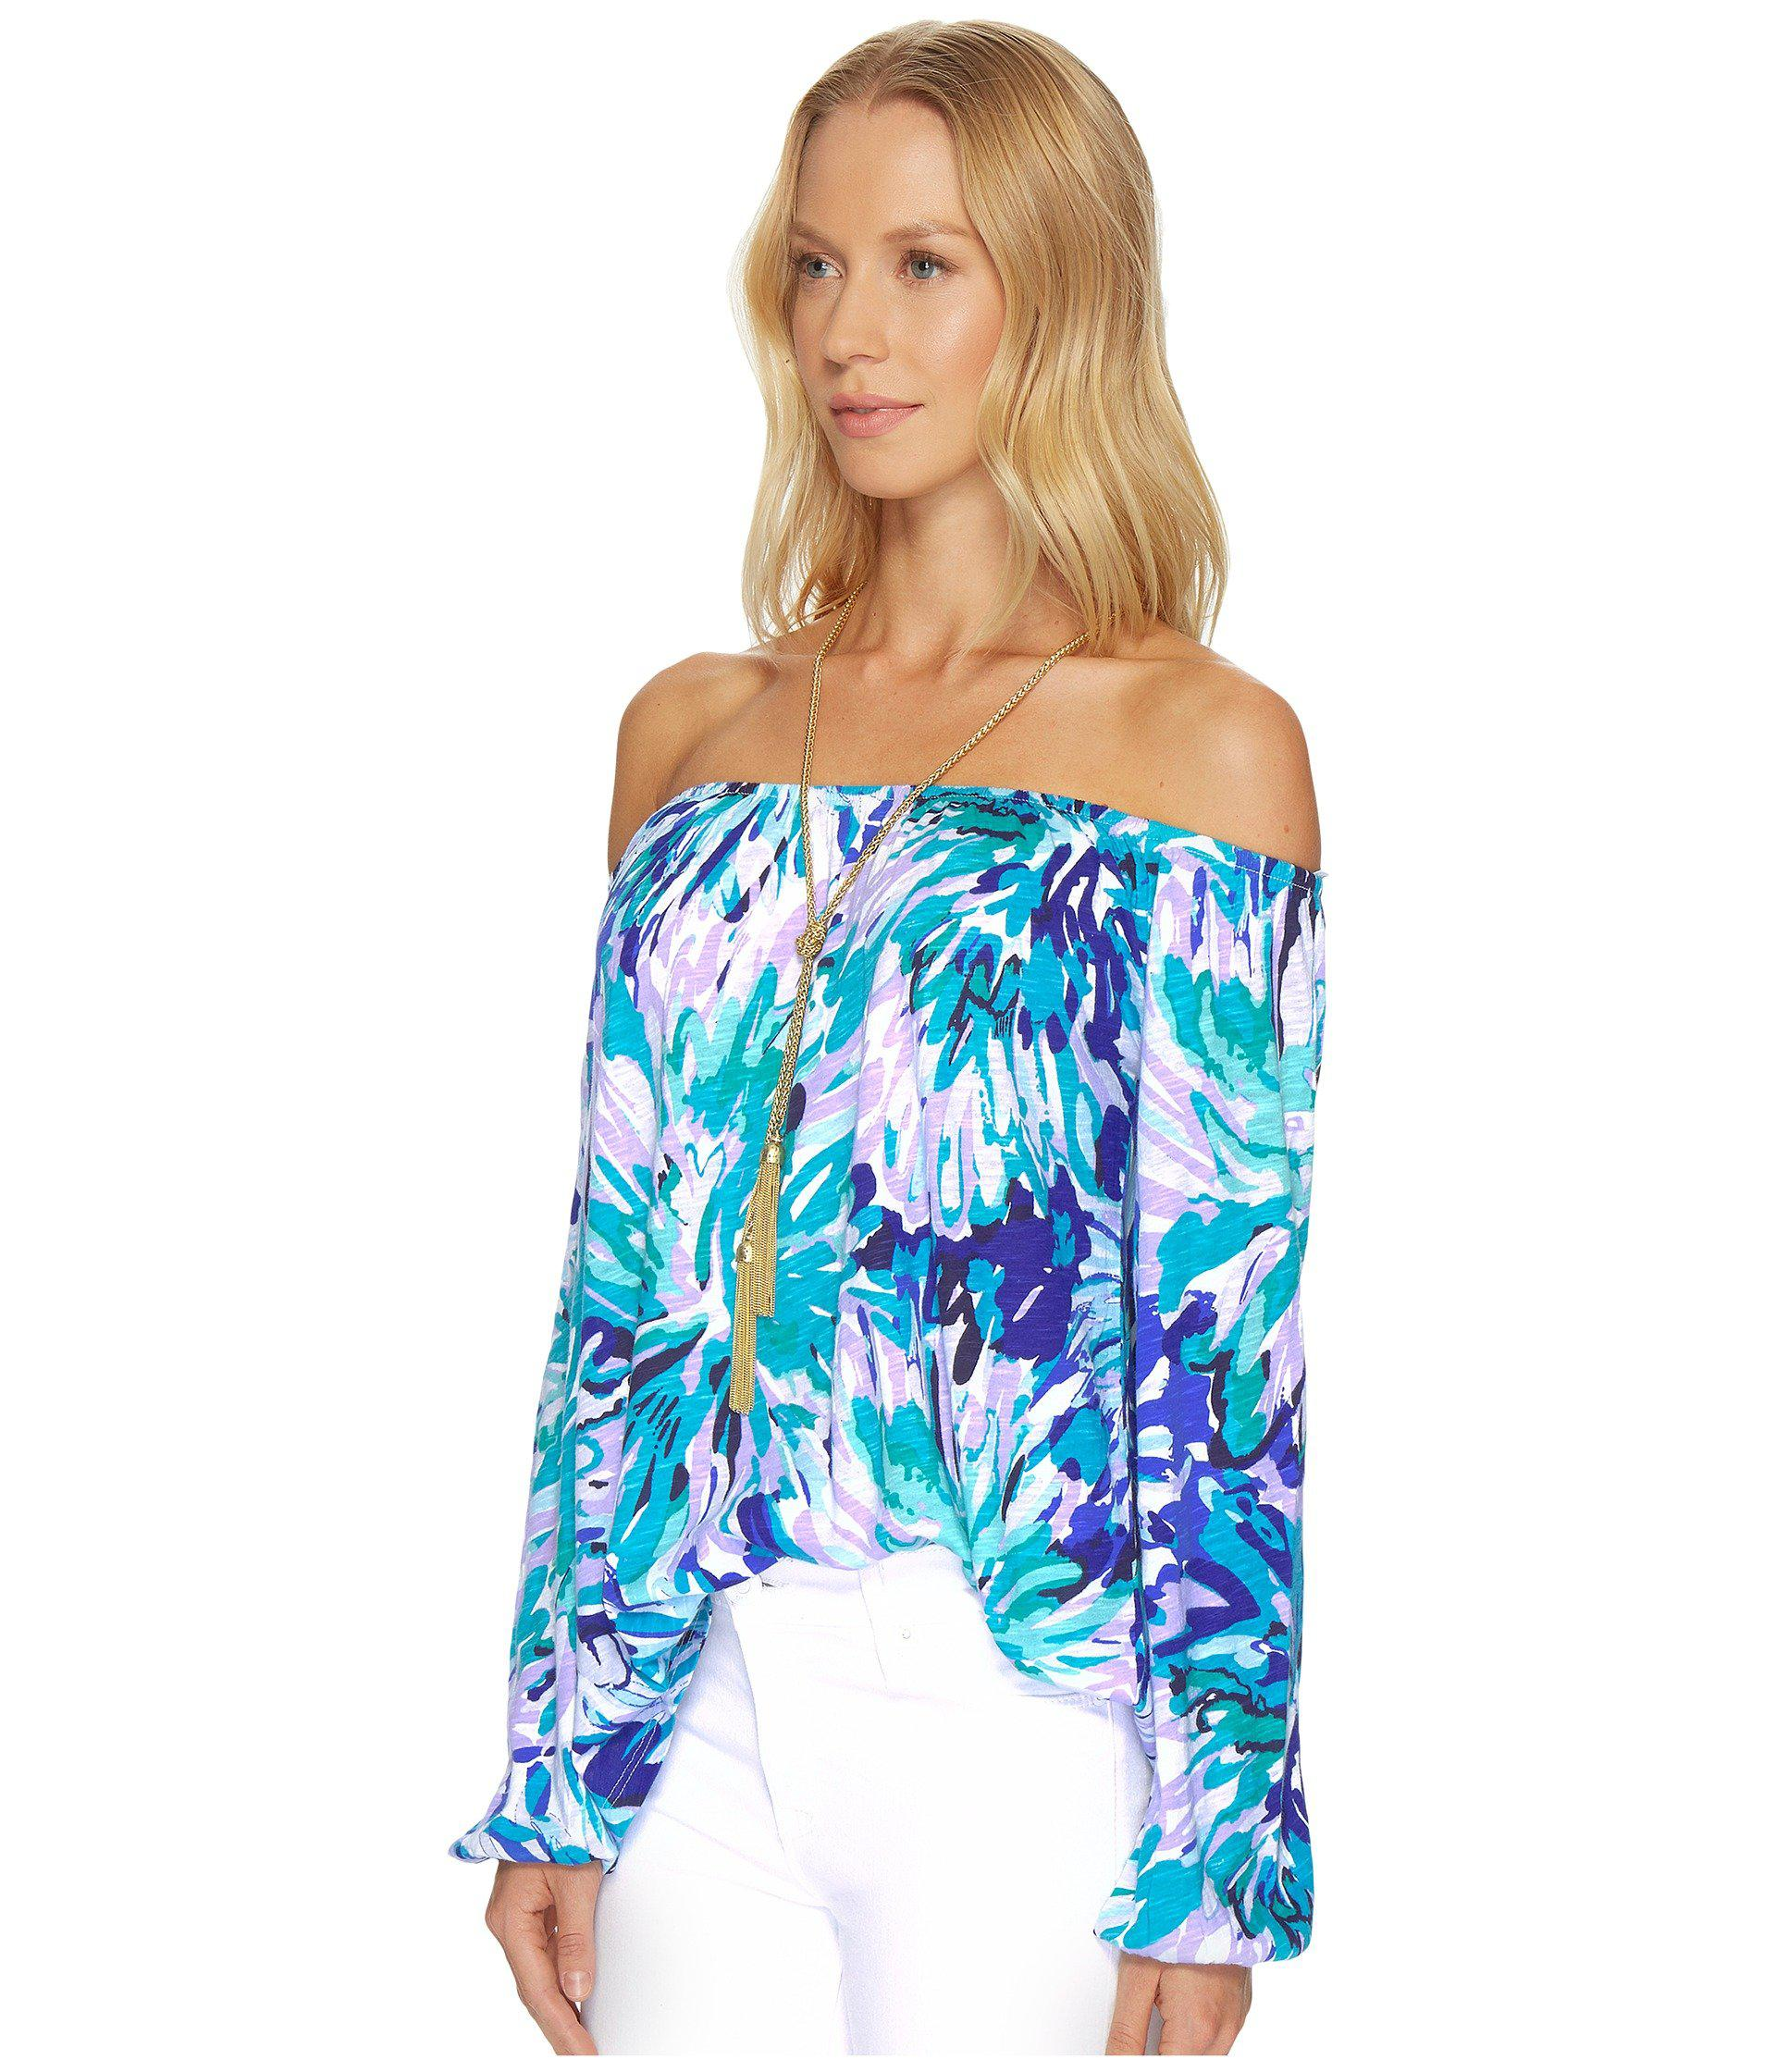 cb984e83f17aa Lyst - Lilly Pulitzer Enna Knit Top in Blue